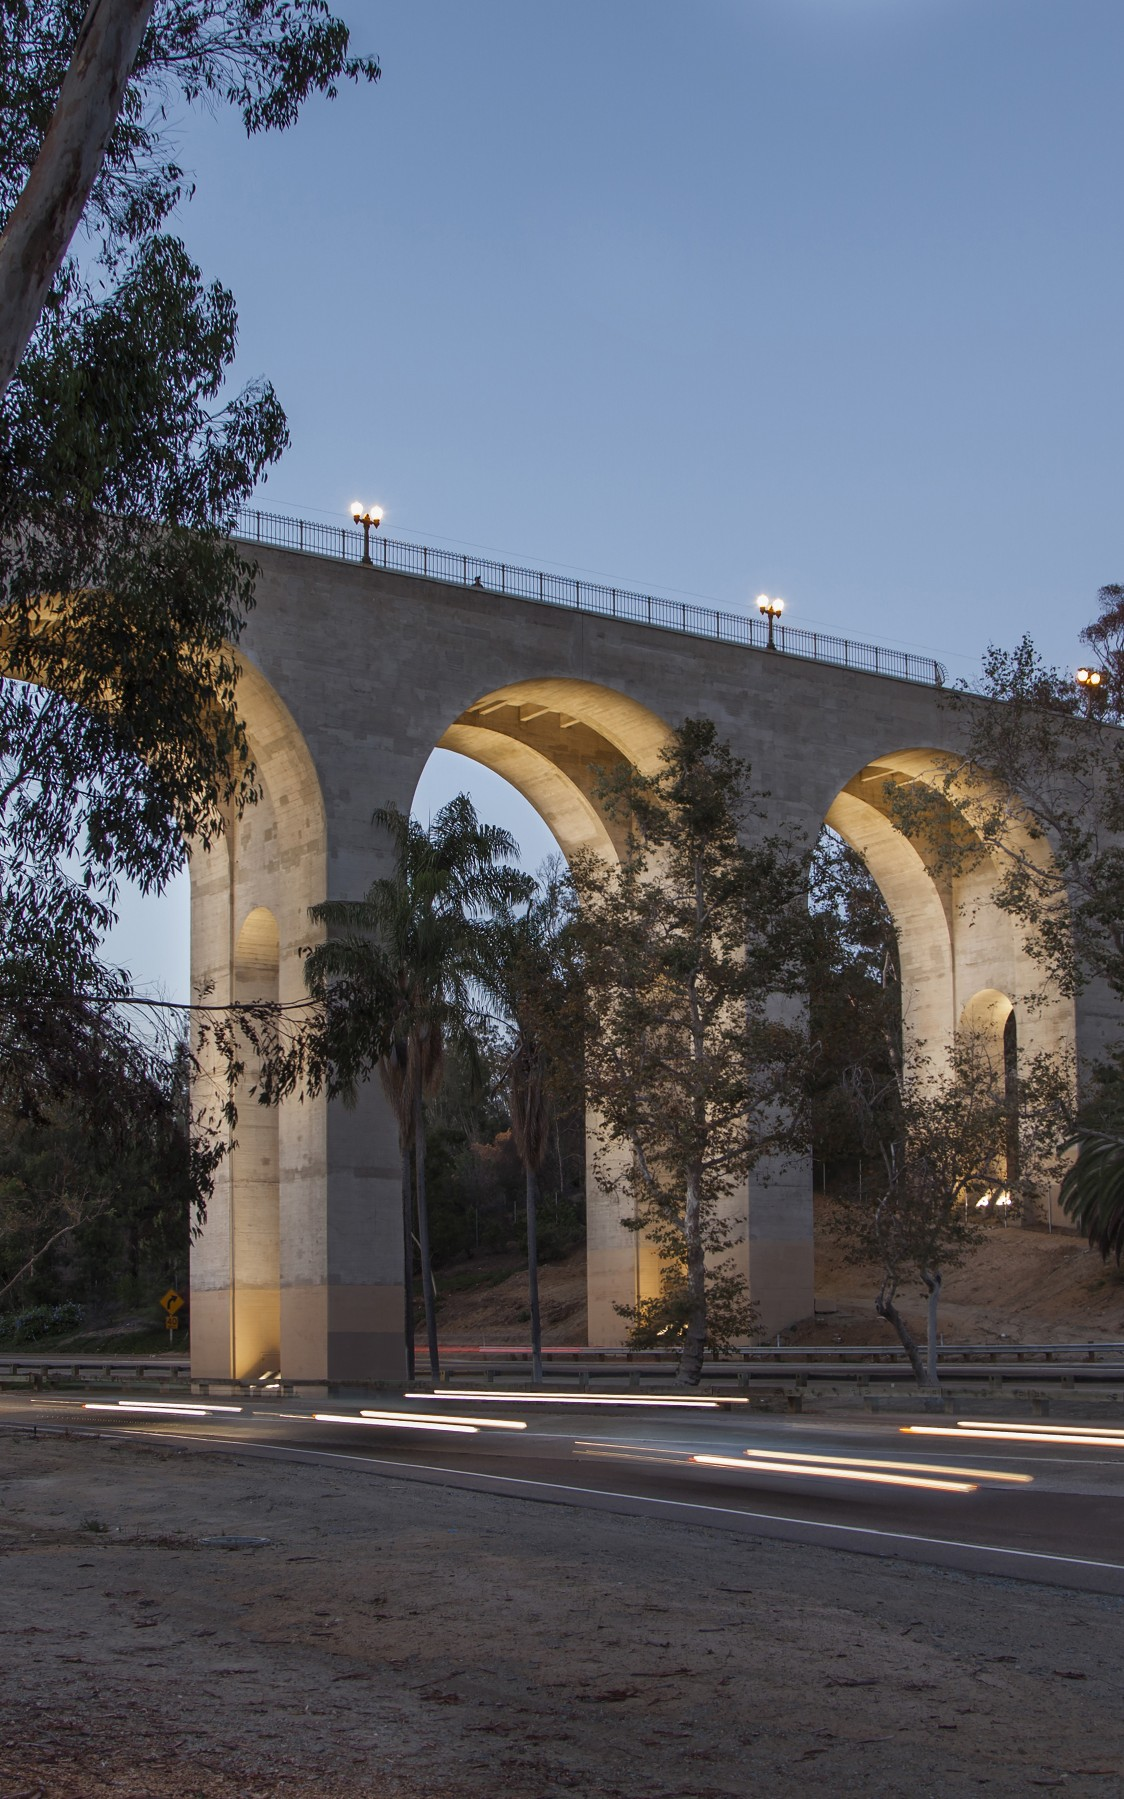 Lighting designers Illumination Arts decided to light the bridge's arches  to give it a three-dimensional appearance.